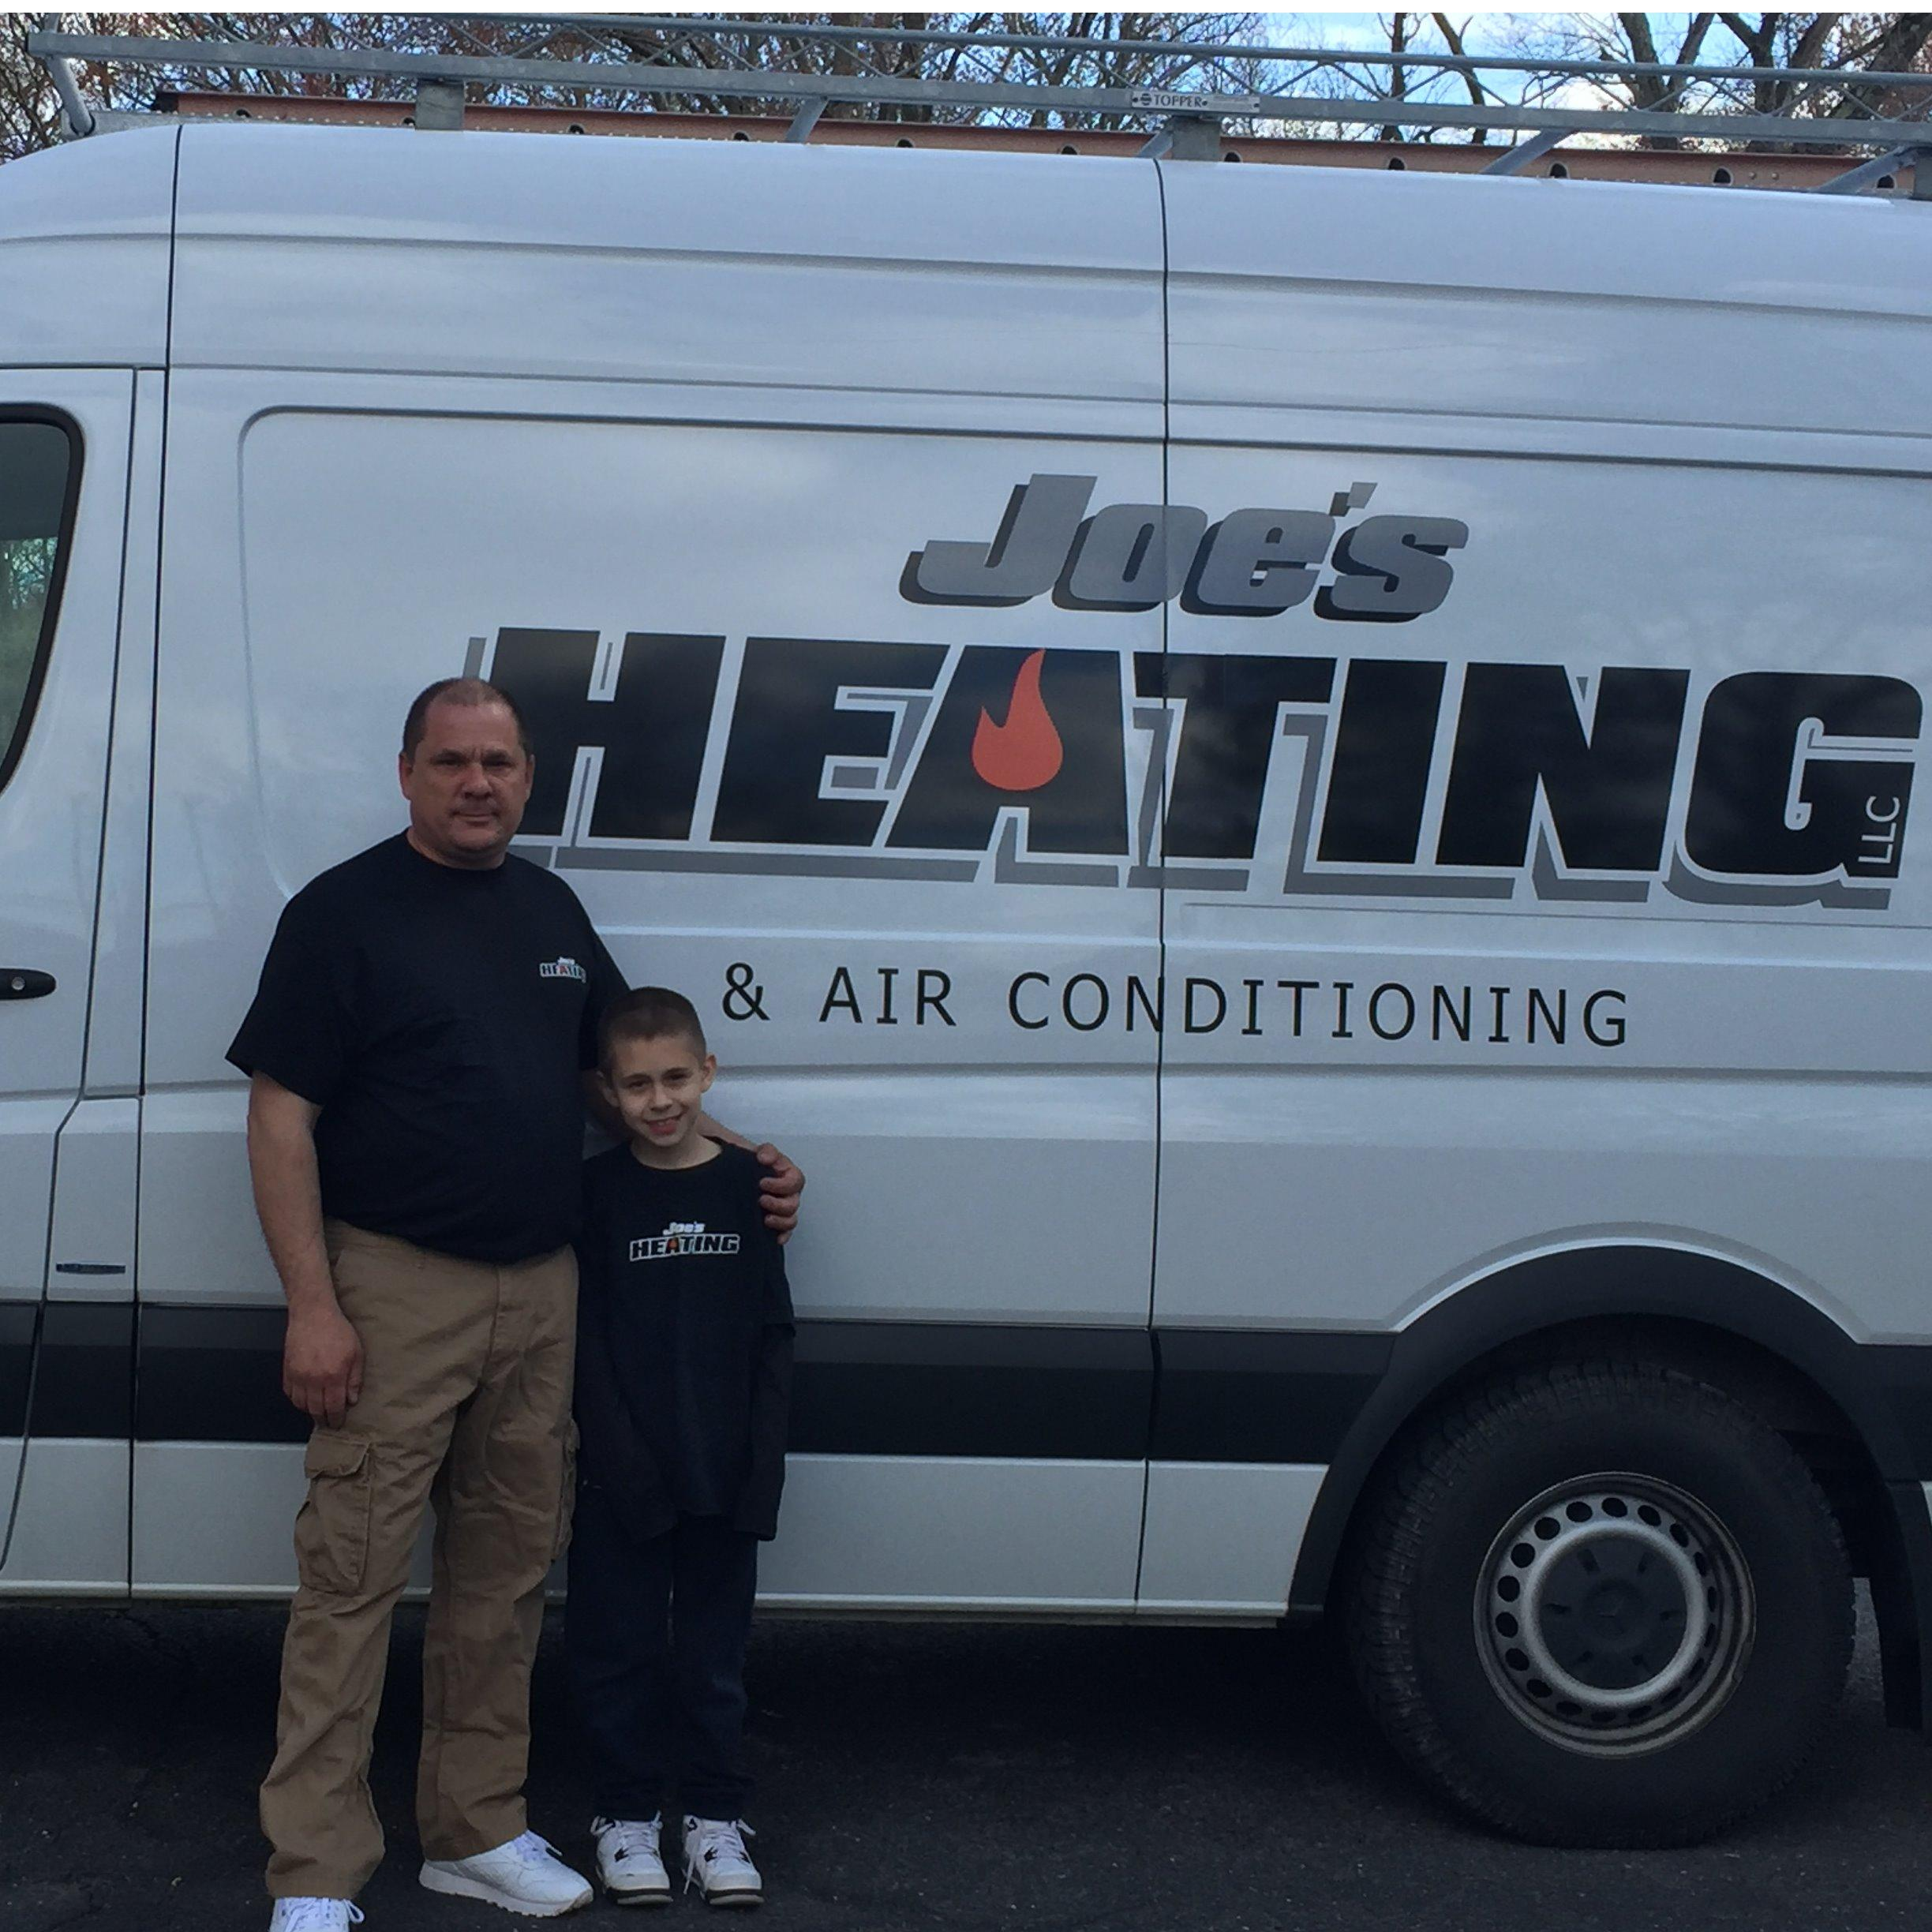 JOES HEATING LLC